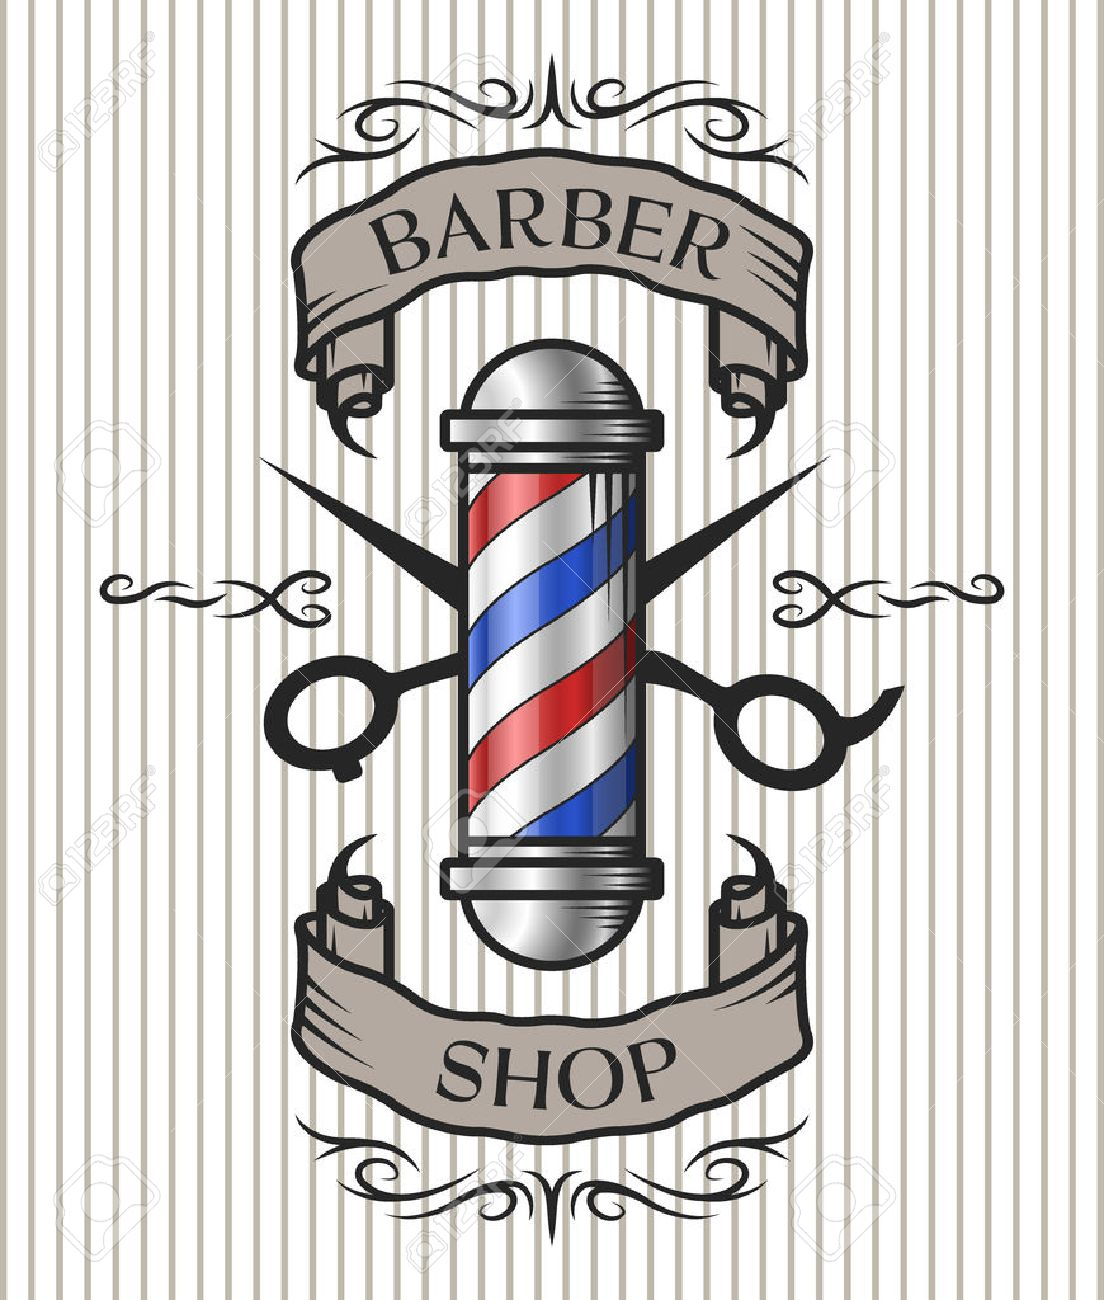 Antique barber shop sign - Barber Shop Emblem Barber Pole Scissors And Ribbon For Text In An Old Vintage